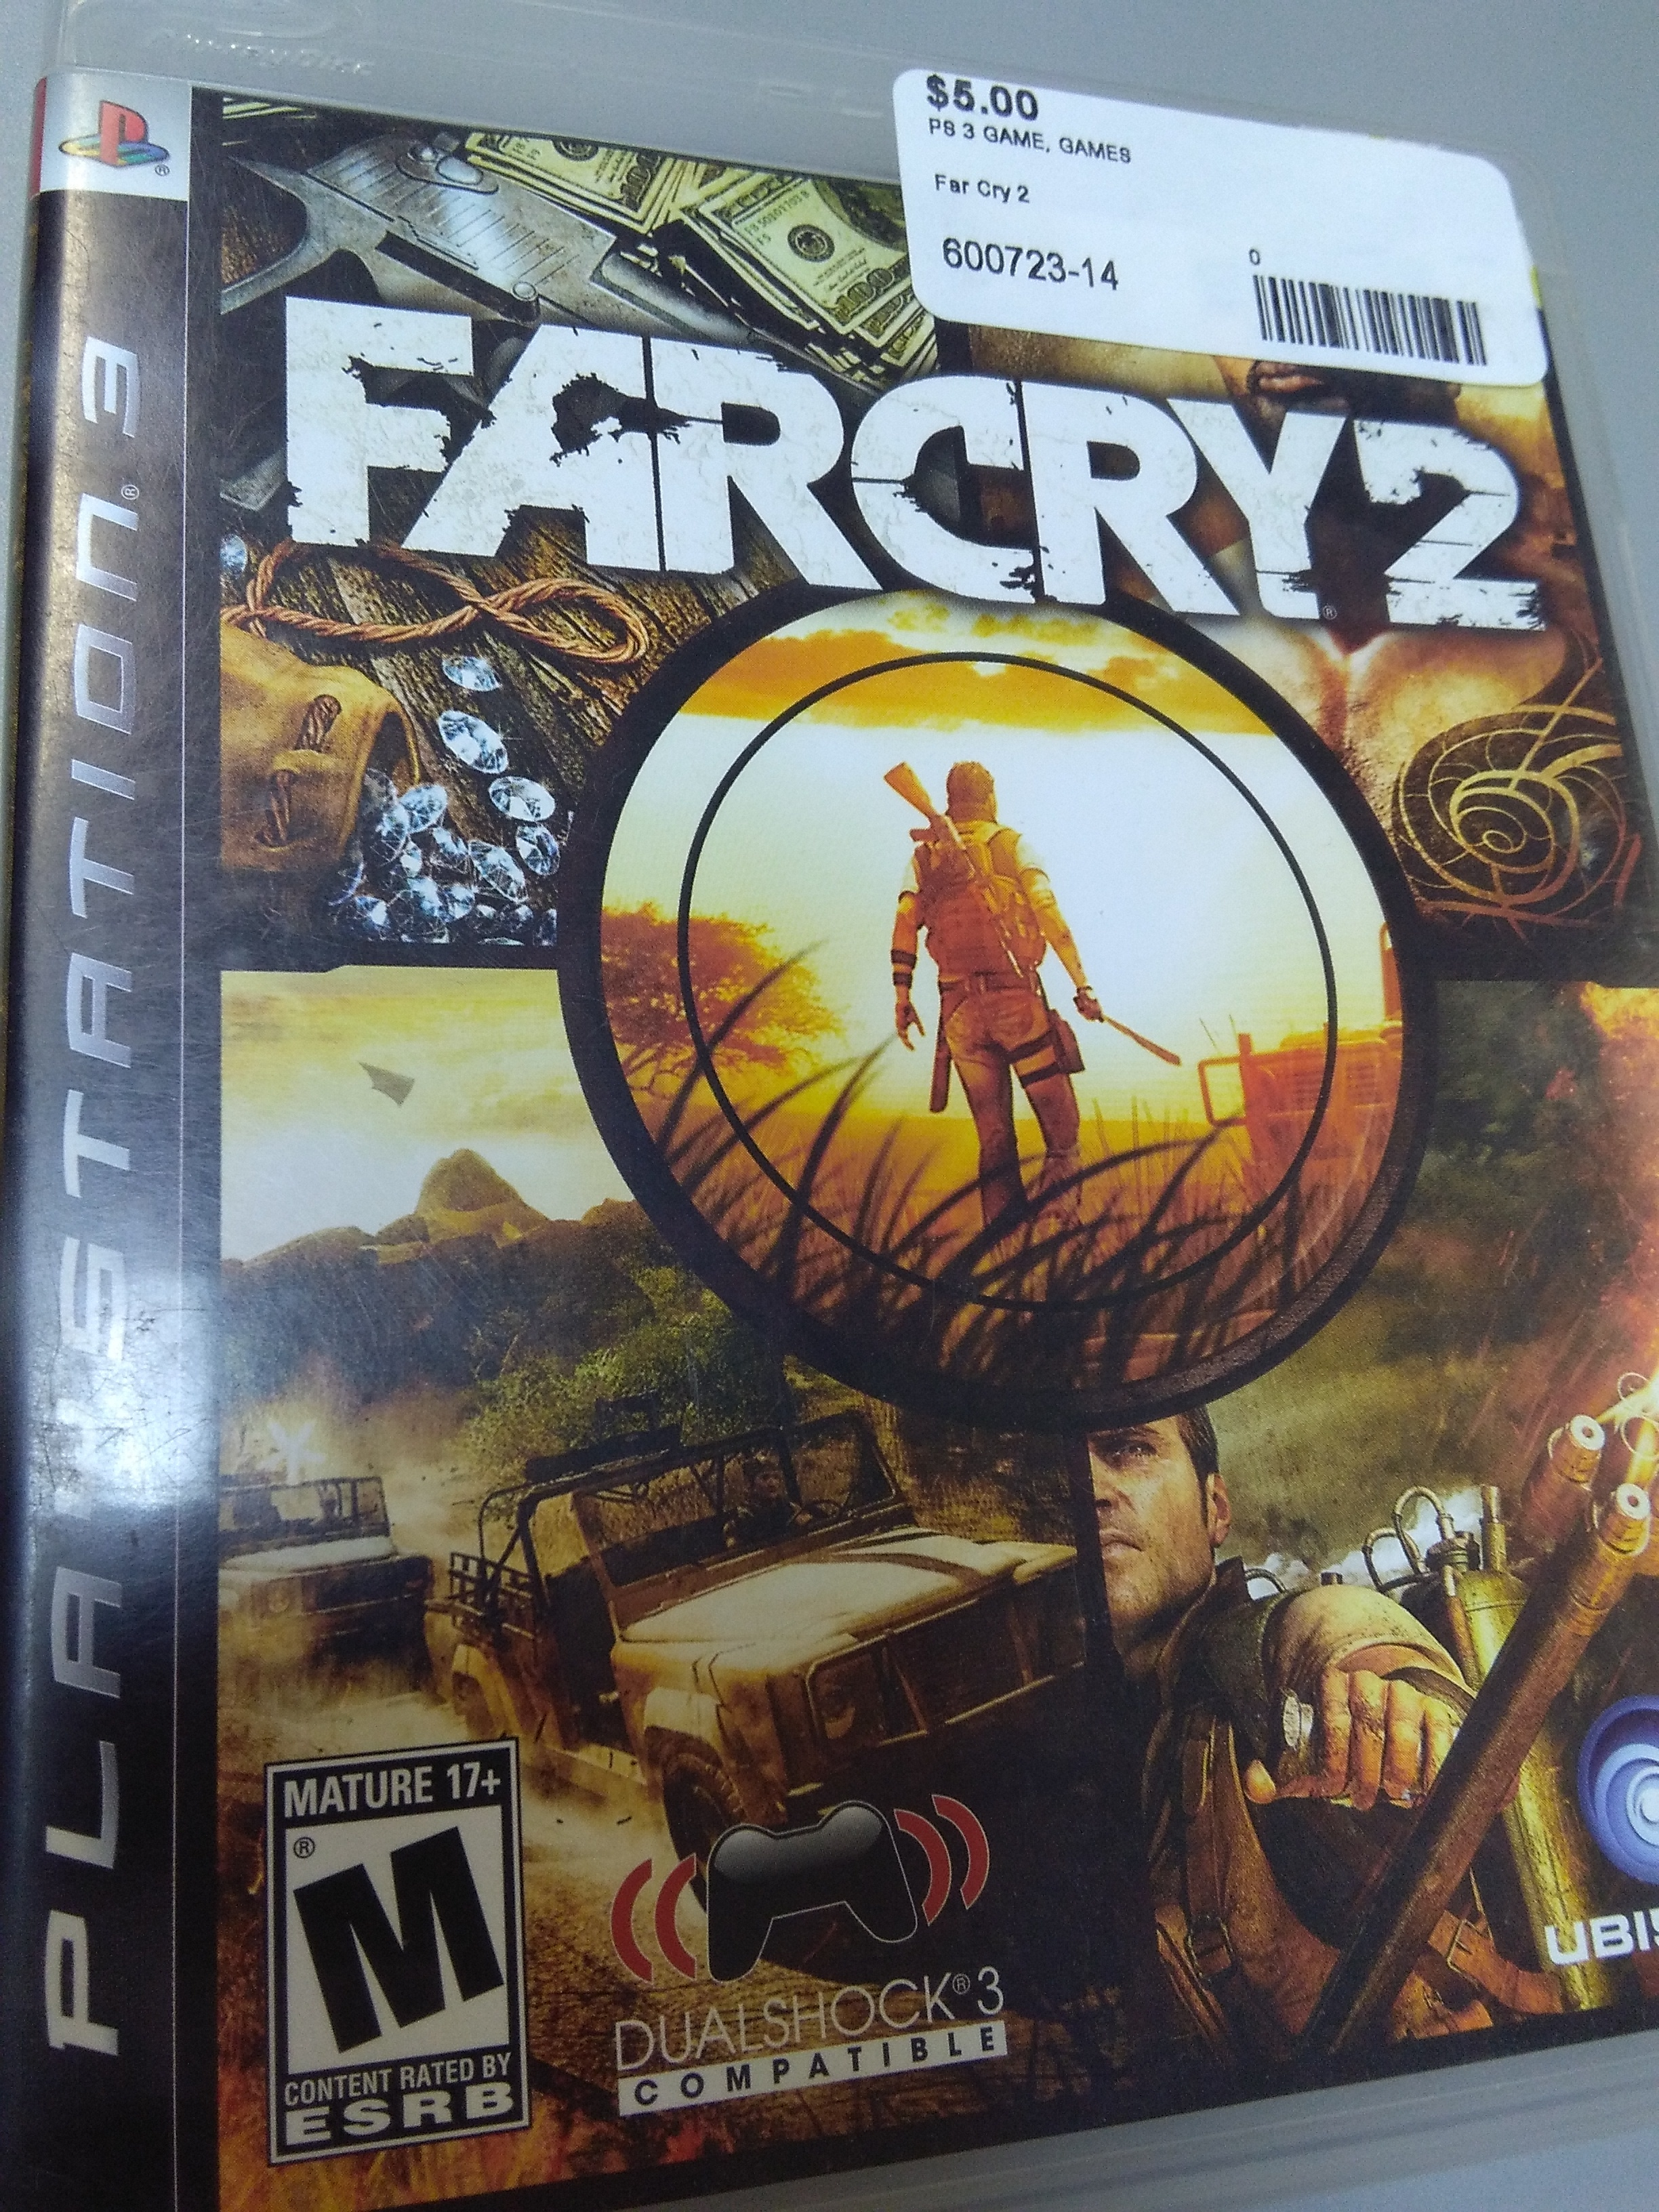 Far cry 2 game for PS3